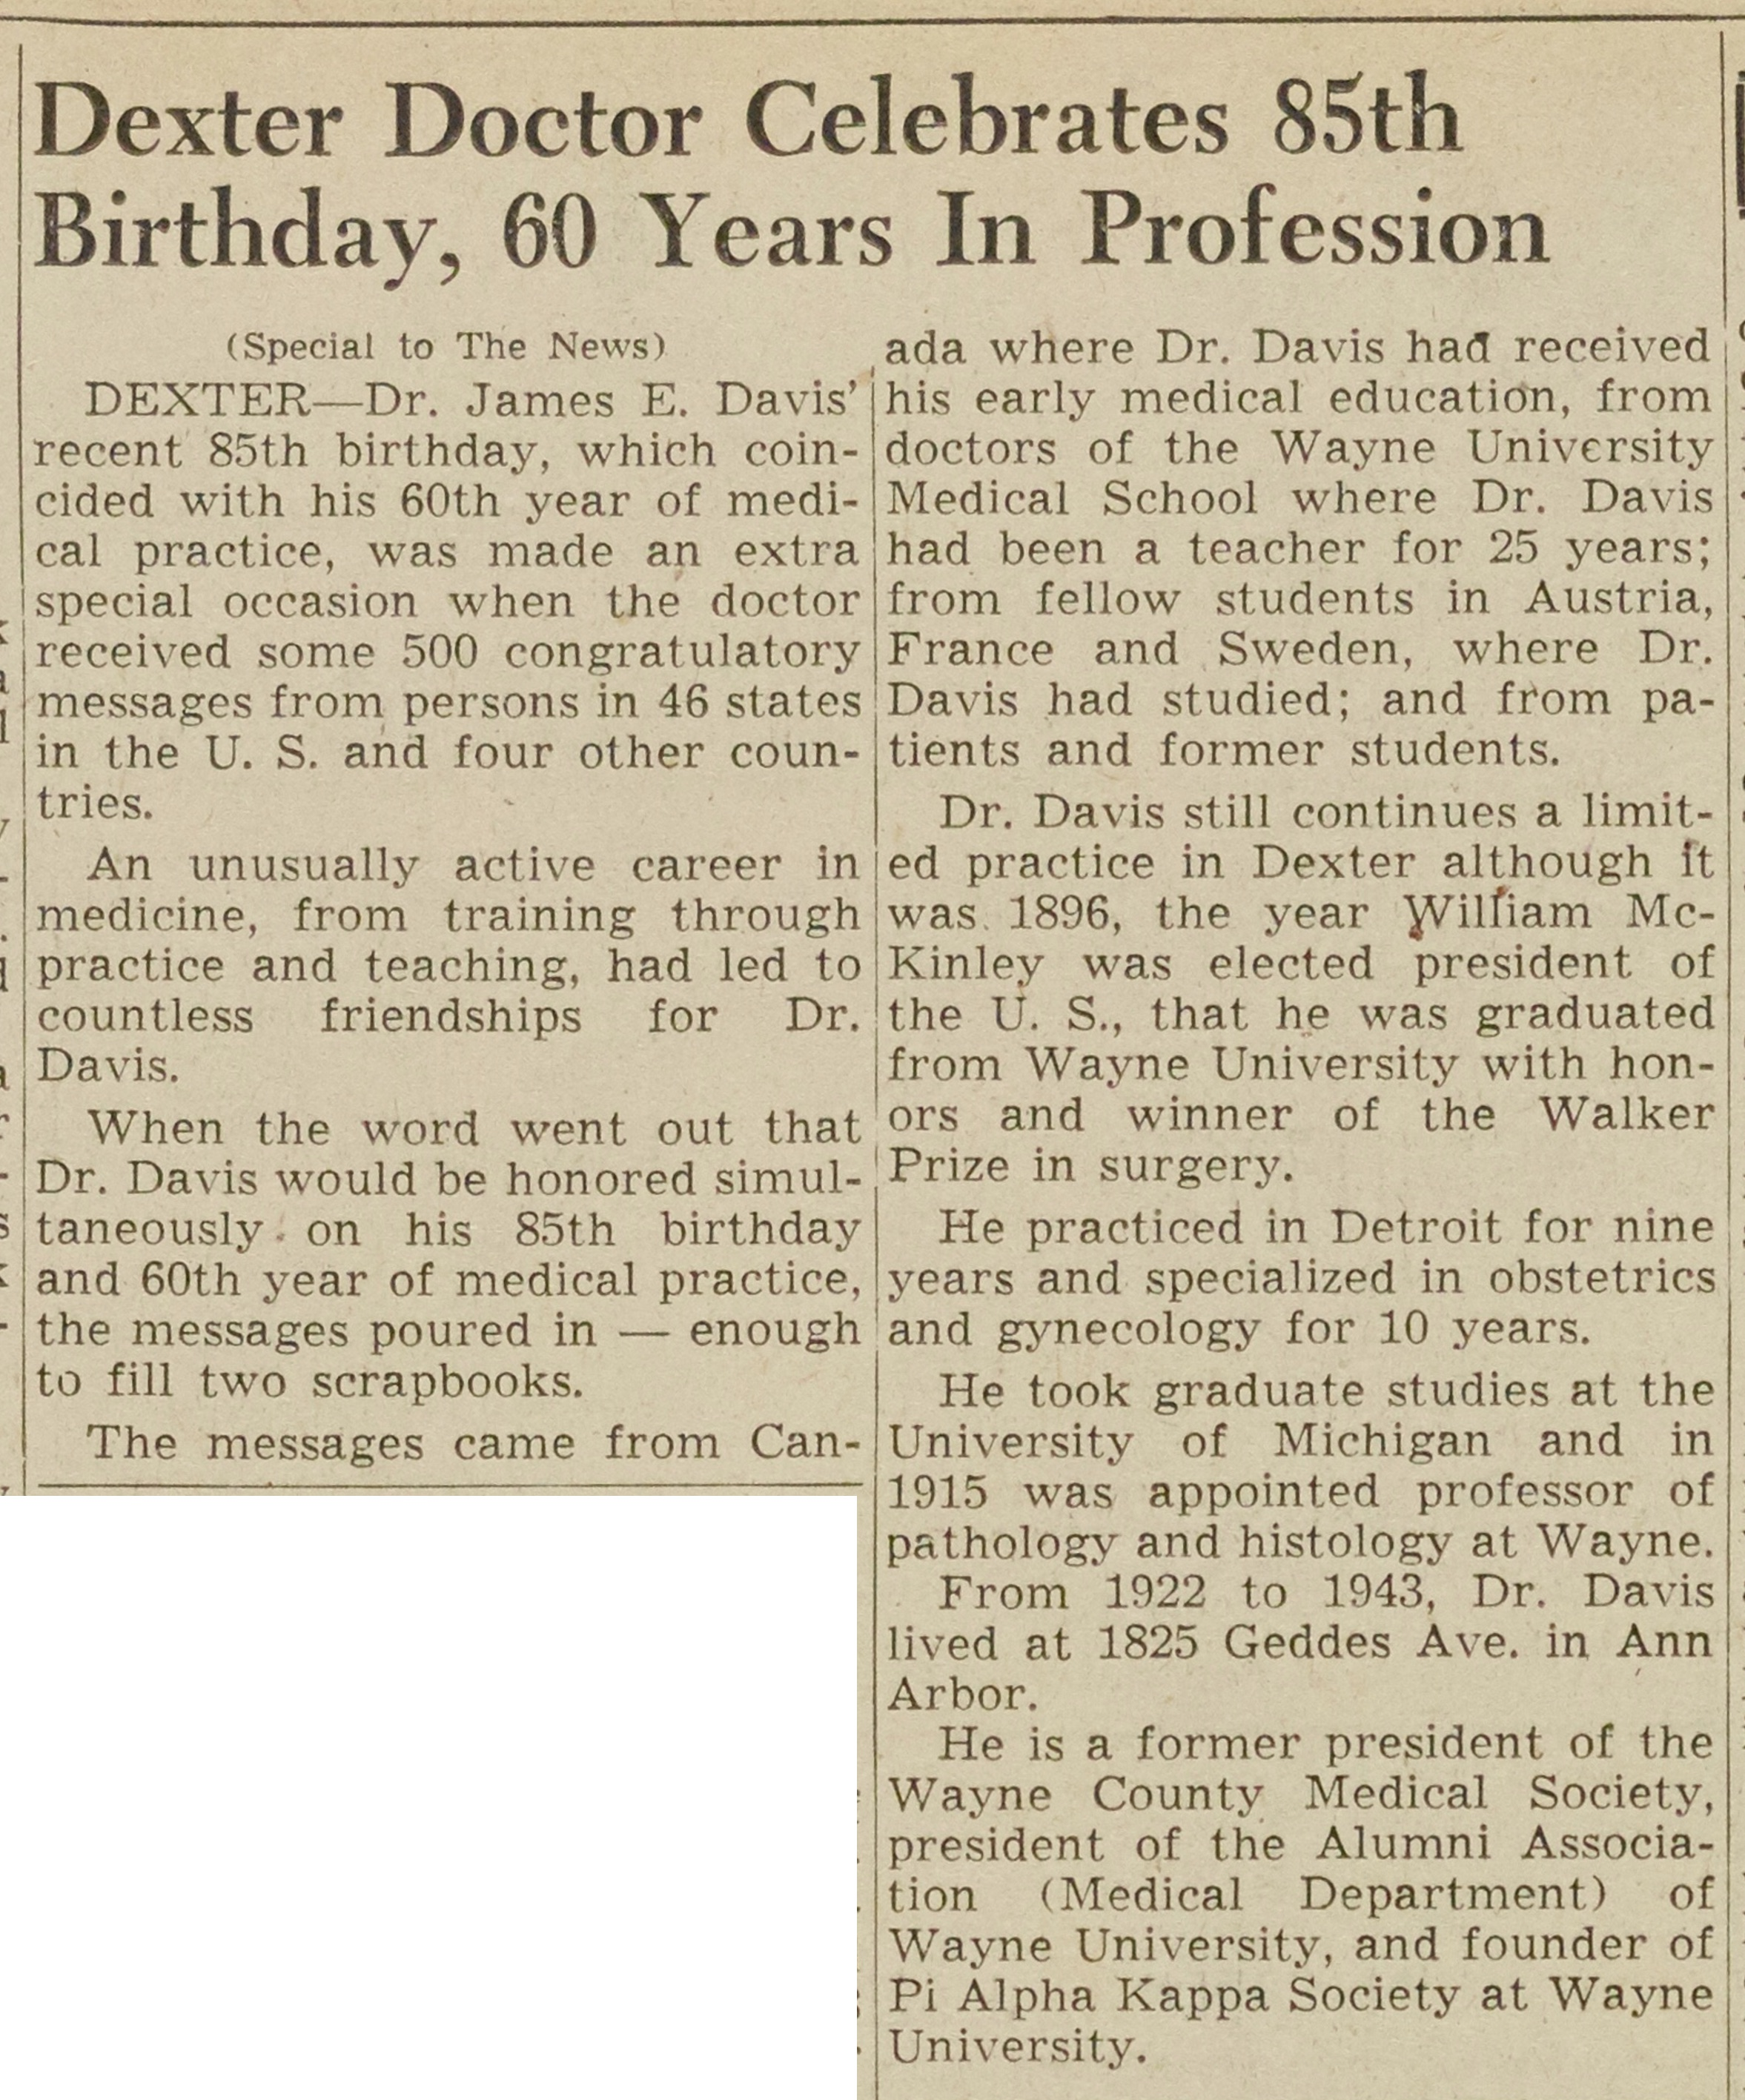 Dexter Doctor Celebrates 85th Birthday, 60 Years In Profession image